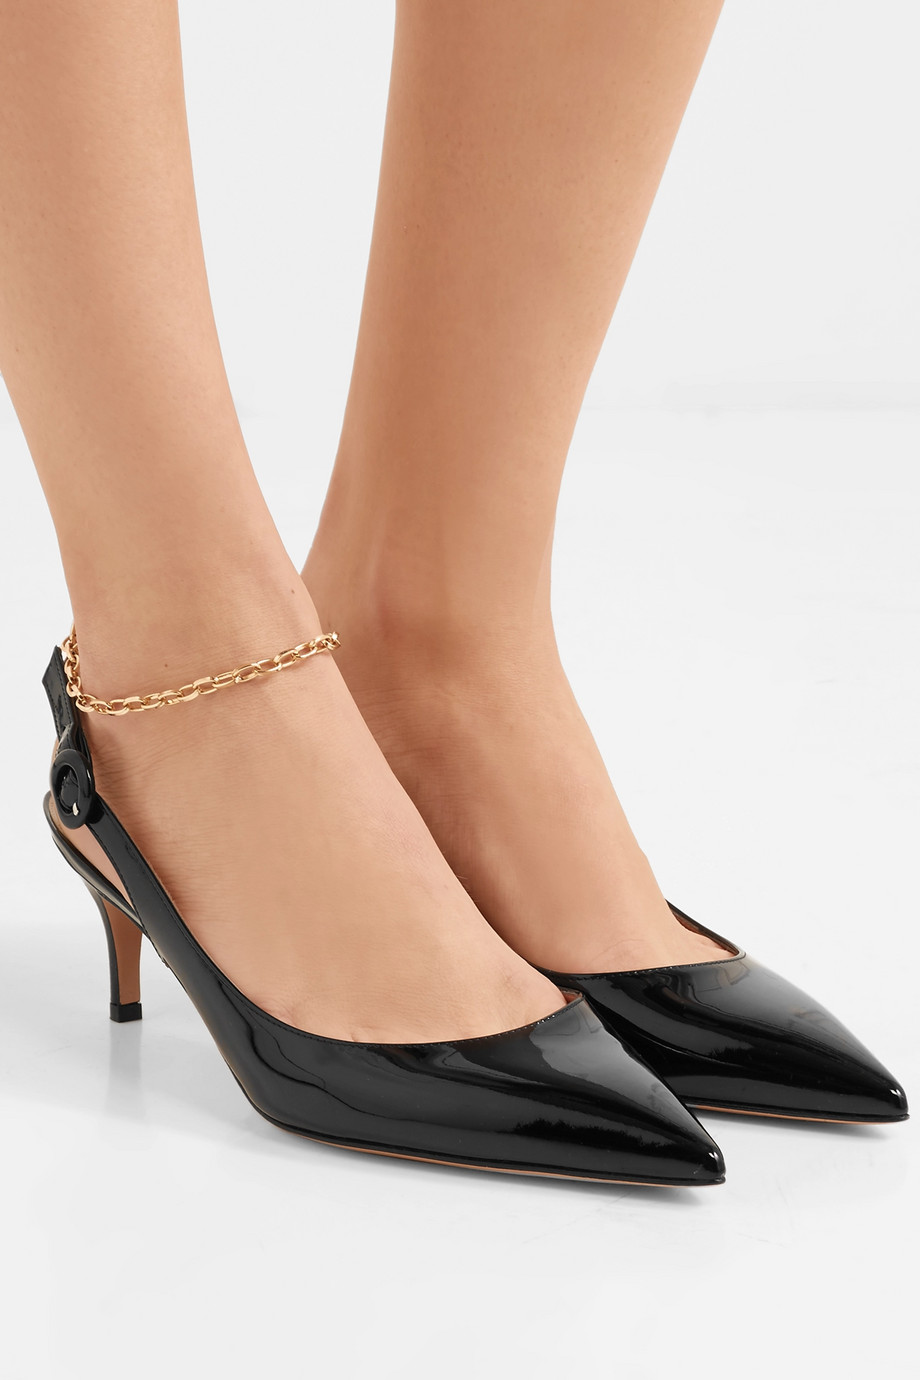 Gianvito Rossi Anna 55 patent-leather slingback pumps